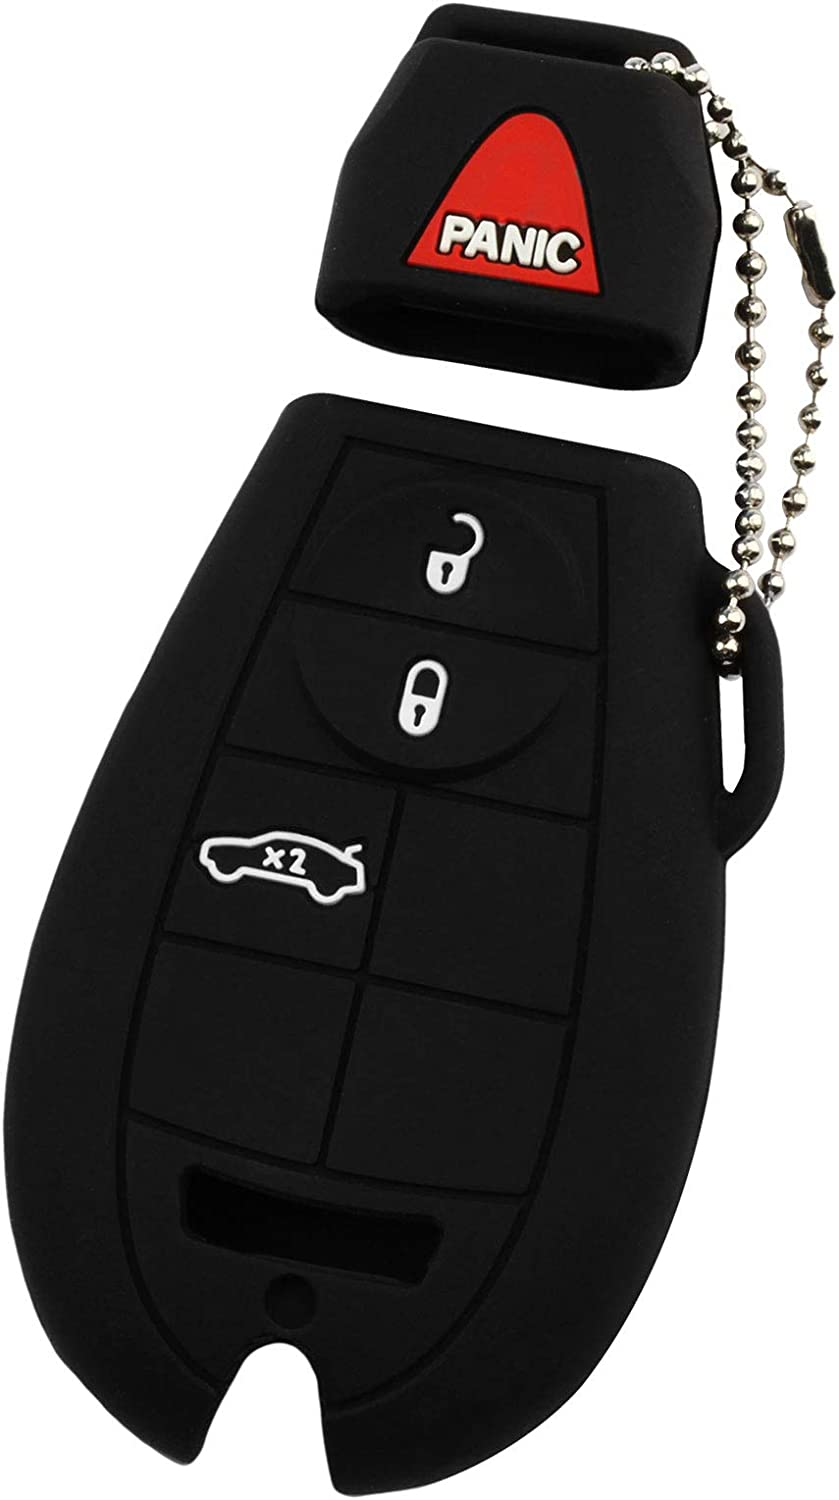 KeyGuardz Keyless Remote Car Smart Key Fob Outer Shell Cover Soft Rubber Case for Chrysler Dodge Ram Jeep